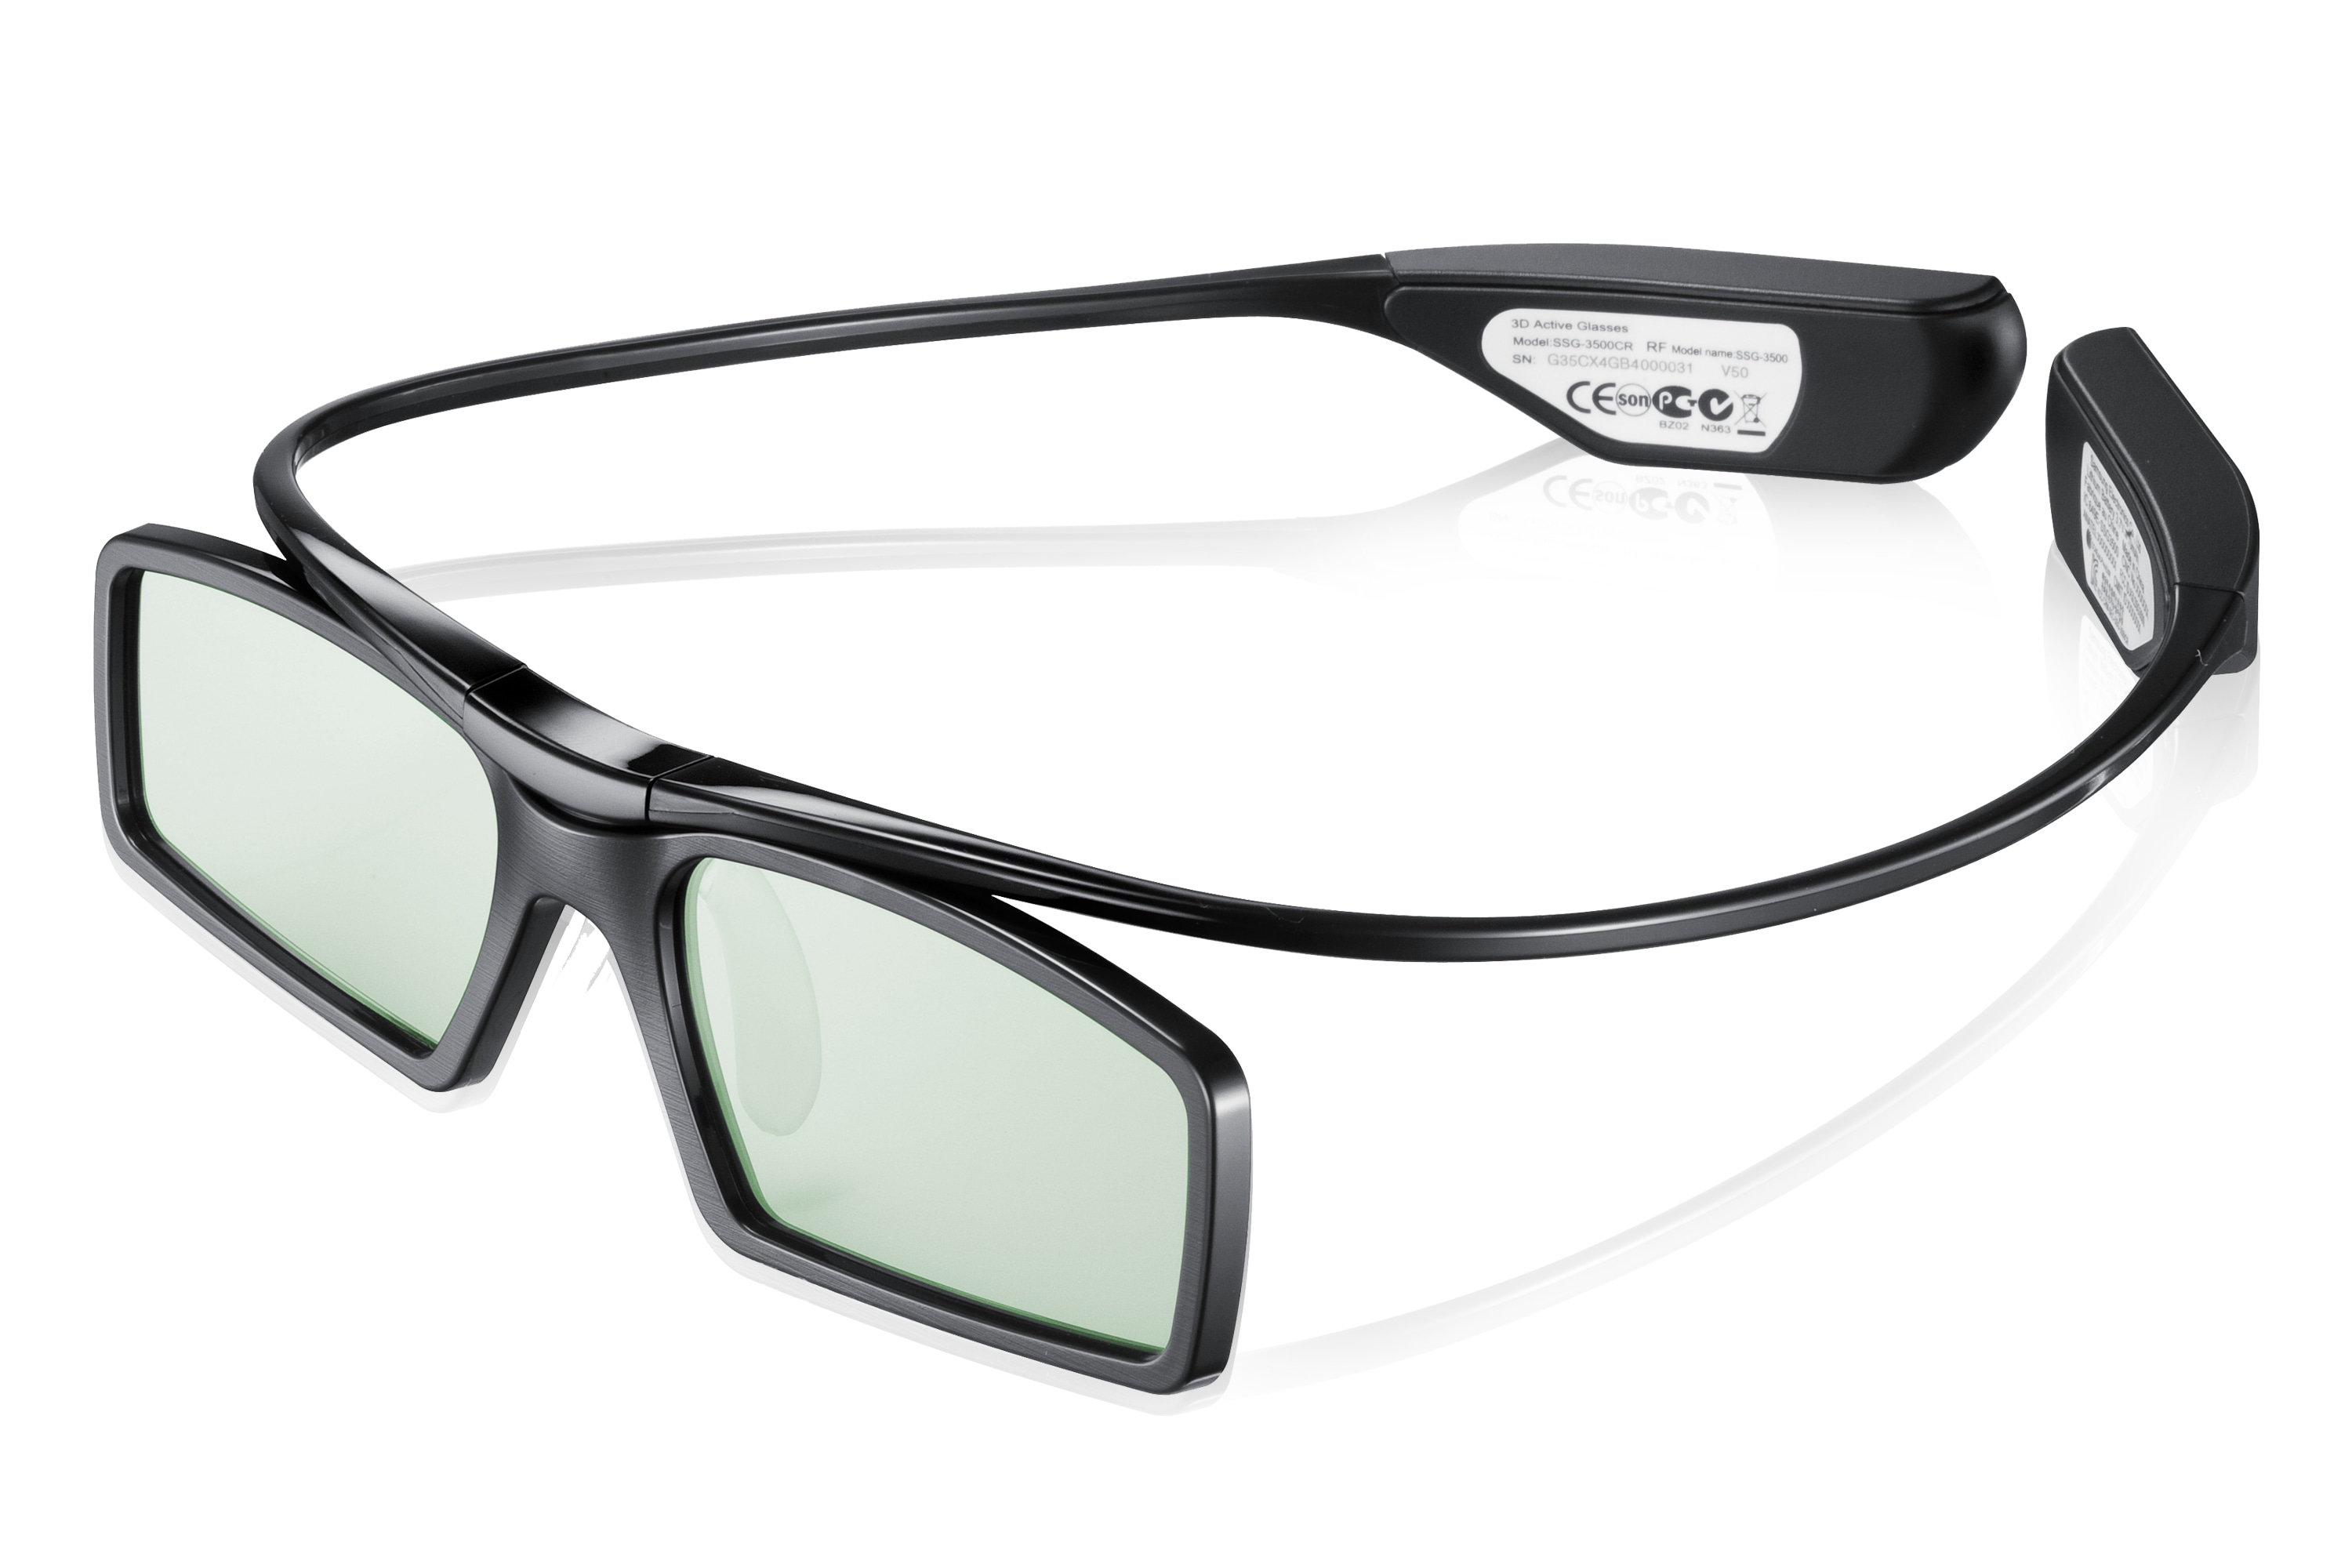 SSG-3550CR 3D TV Glasses (USB)